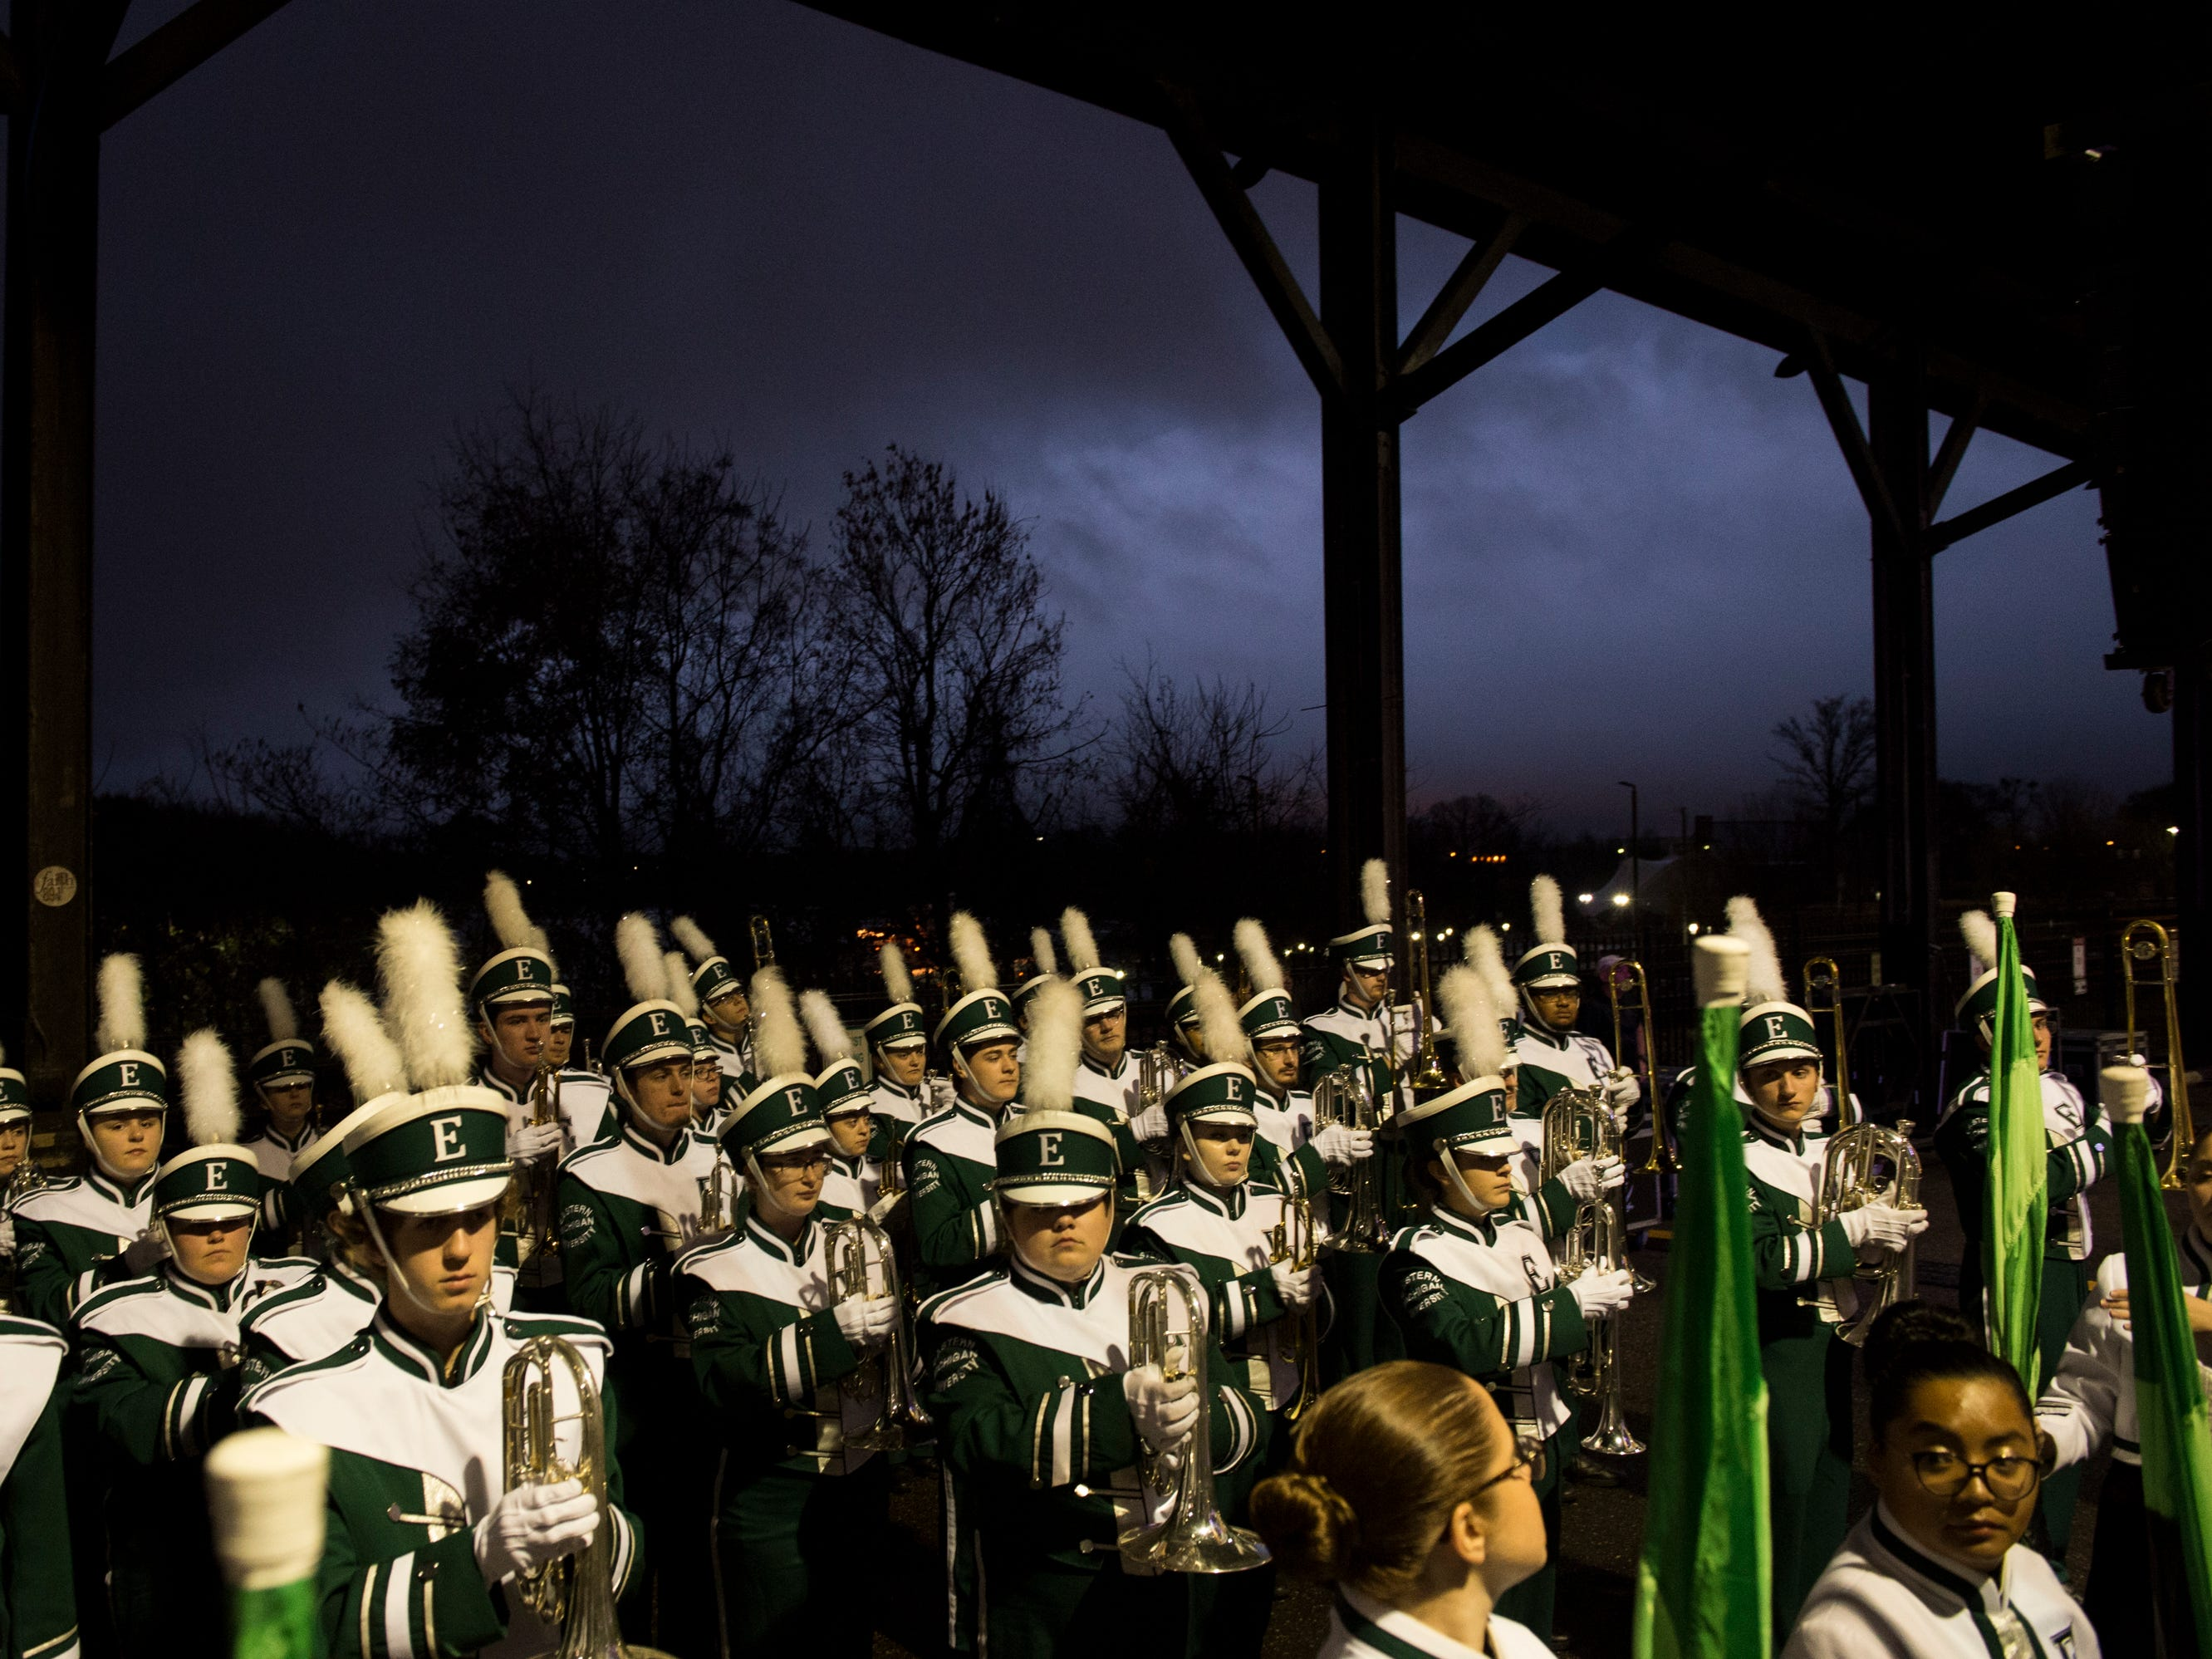 The Eastern Michigan Marching Band prepares to play during an Eastern Michigan pep rally at the Union Station Train Shed in Montgomery, Ala., on Friday, Dec. 14, 2018.  Eastern Michigan will take on Georgia Southern in the Camellia Bowl on Saturday.